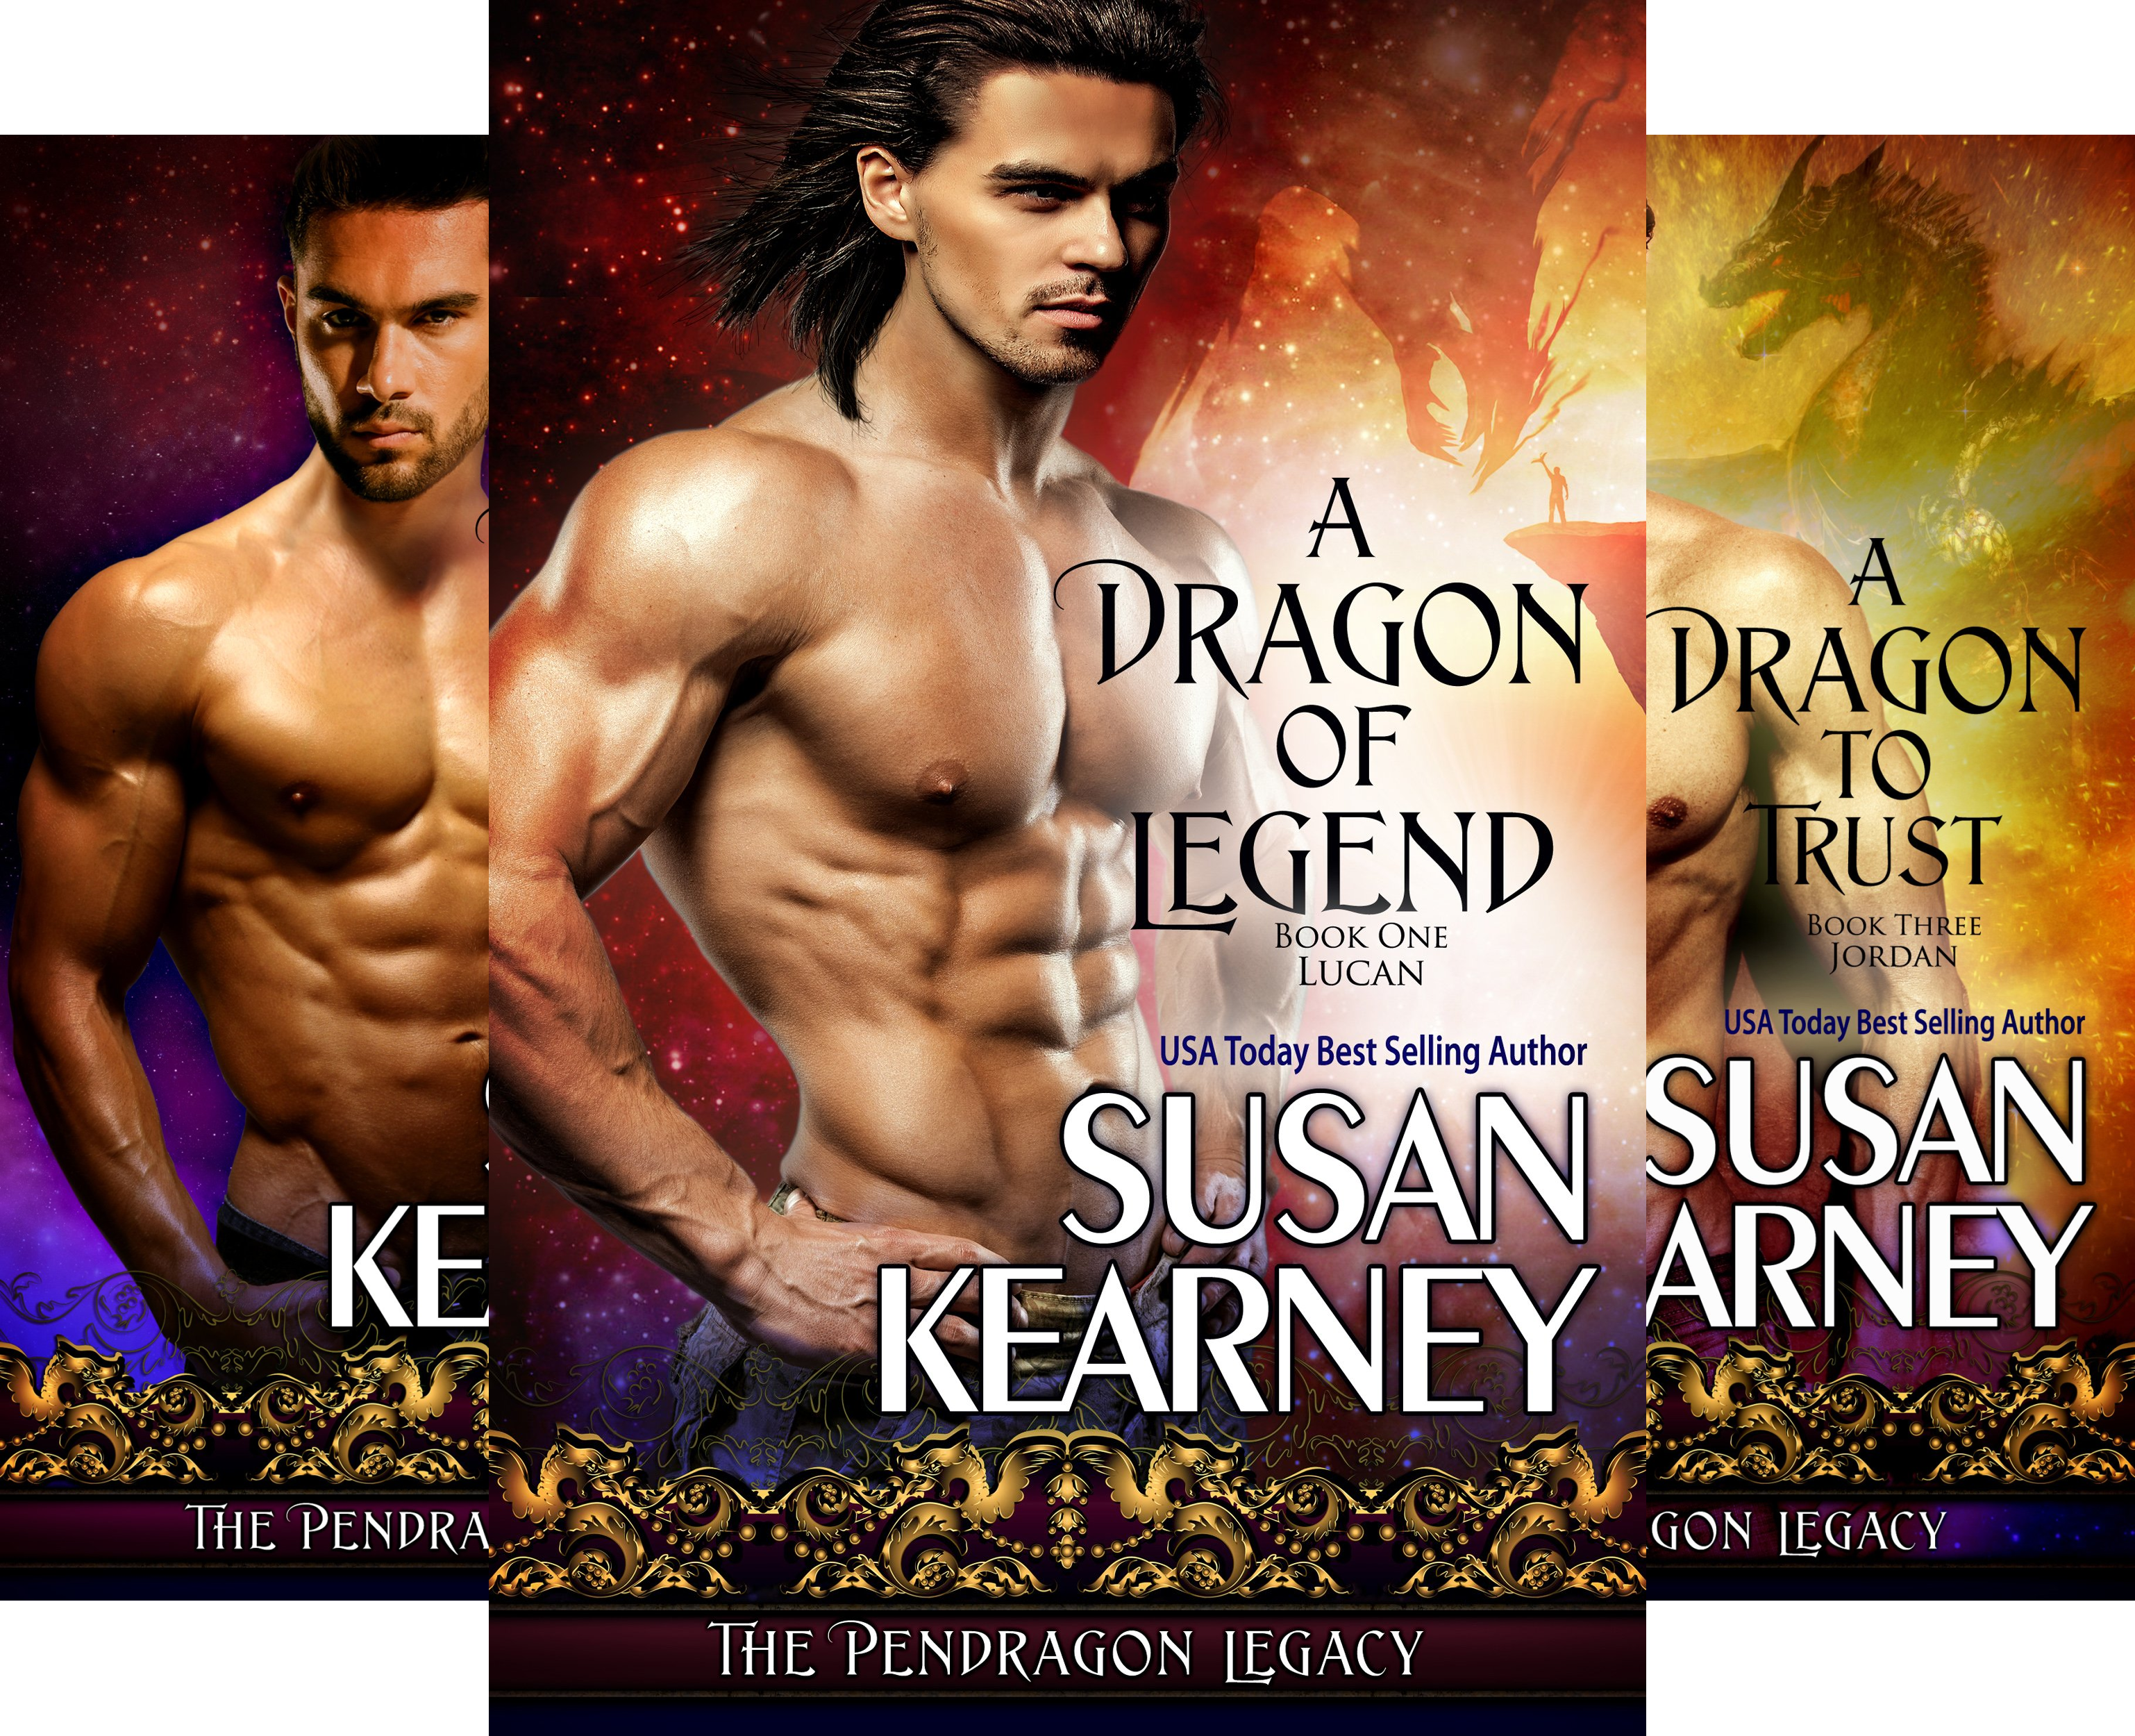 The Pendragon Legacy (3 Book Series)